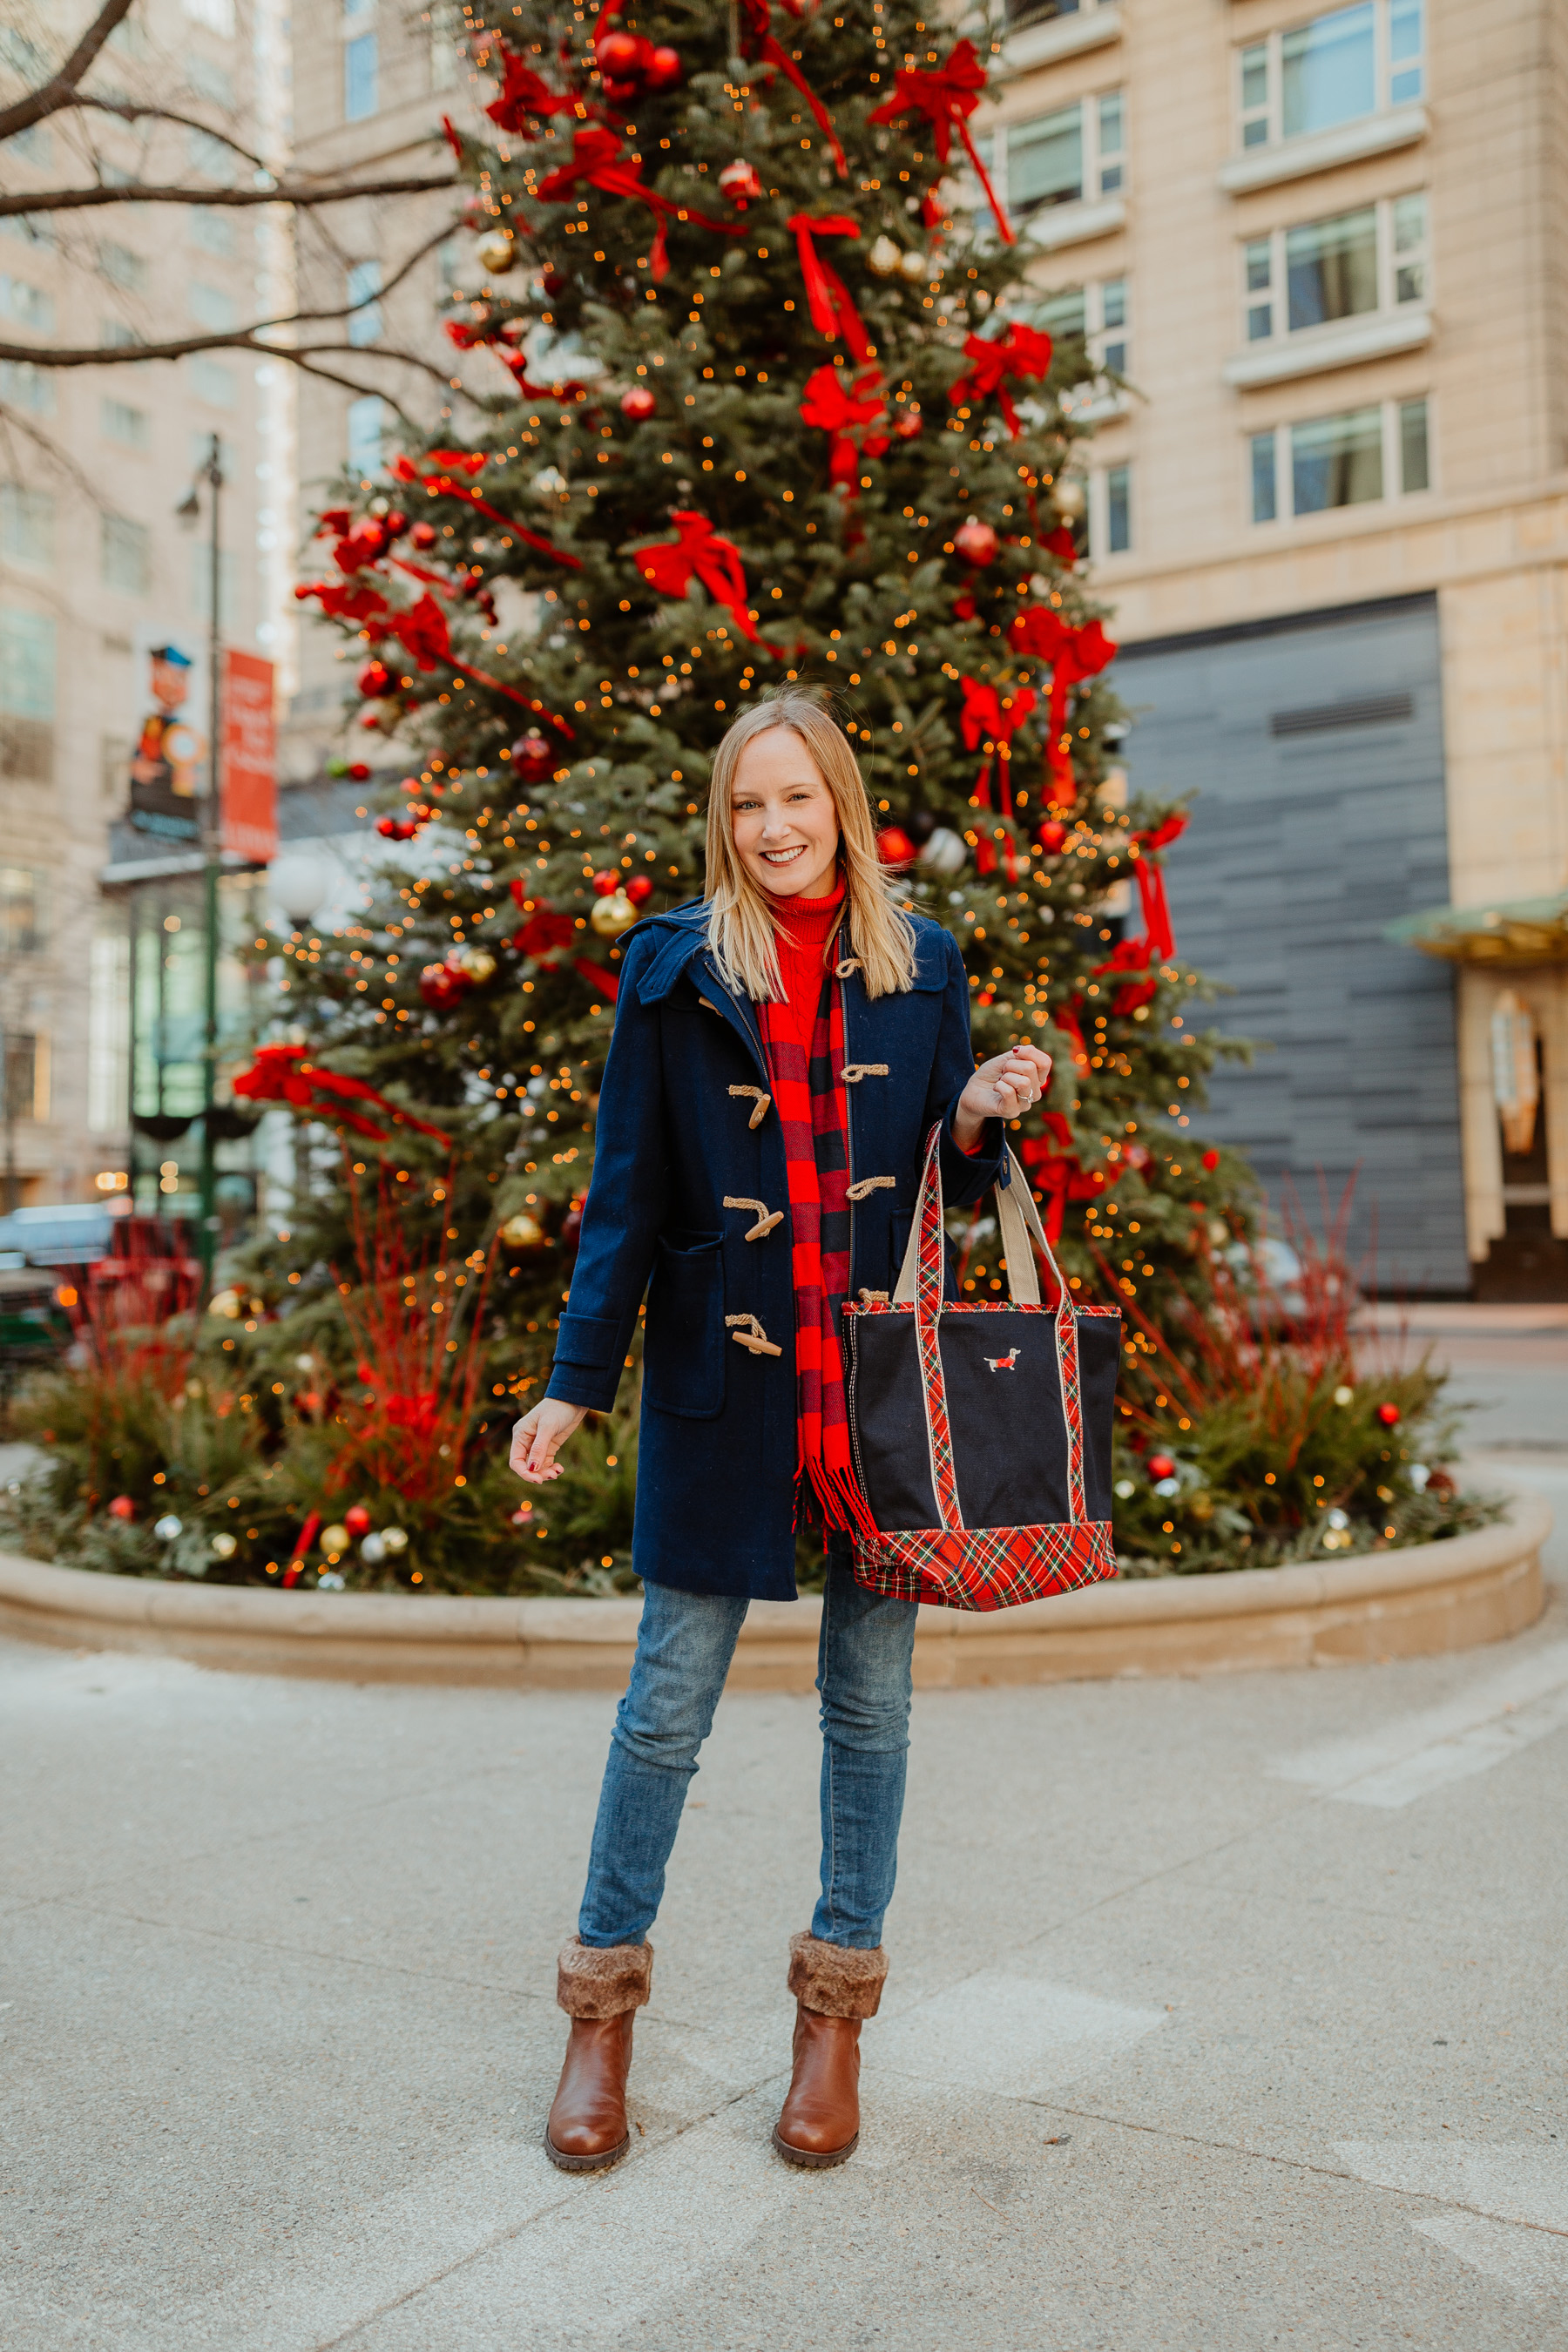 Navy Duffle Coat(On sale!)/ Cable-Knit Turtleneck Sweater / Fur Booties / Buffalo Plaid Scarf /Lands' End Plaid Dachshund Tote c/o /Skinny Jeans(I'm wearingthe maternity version, though.) - Kelly in the City